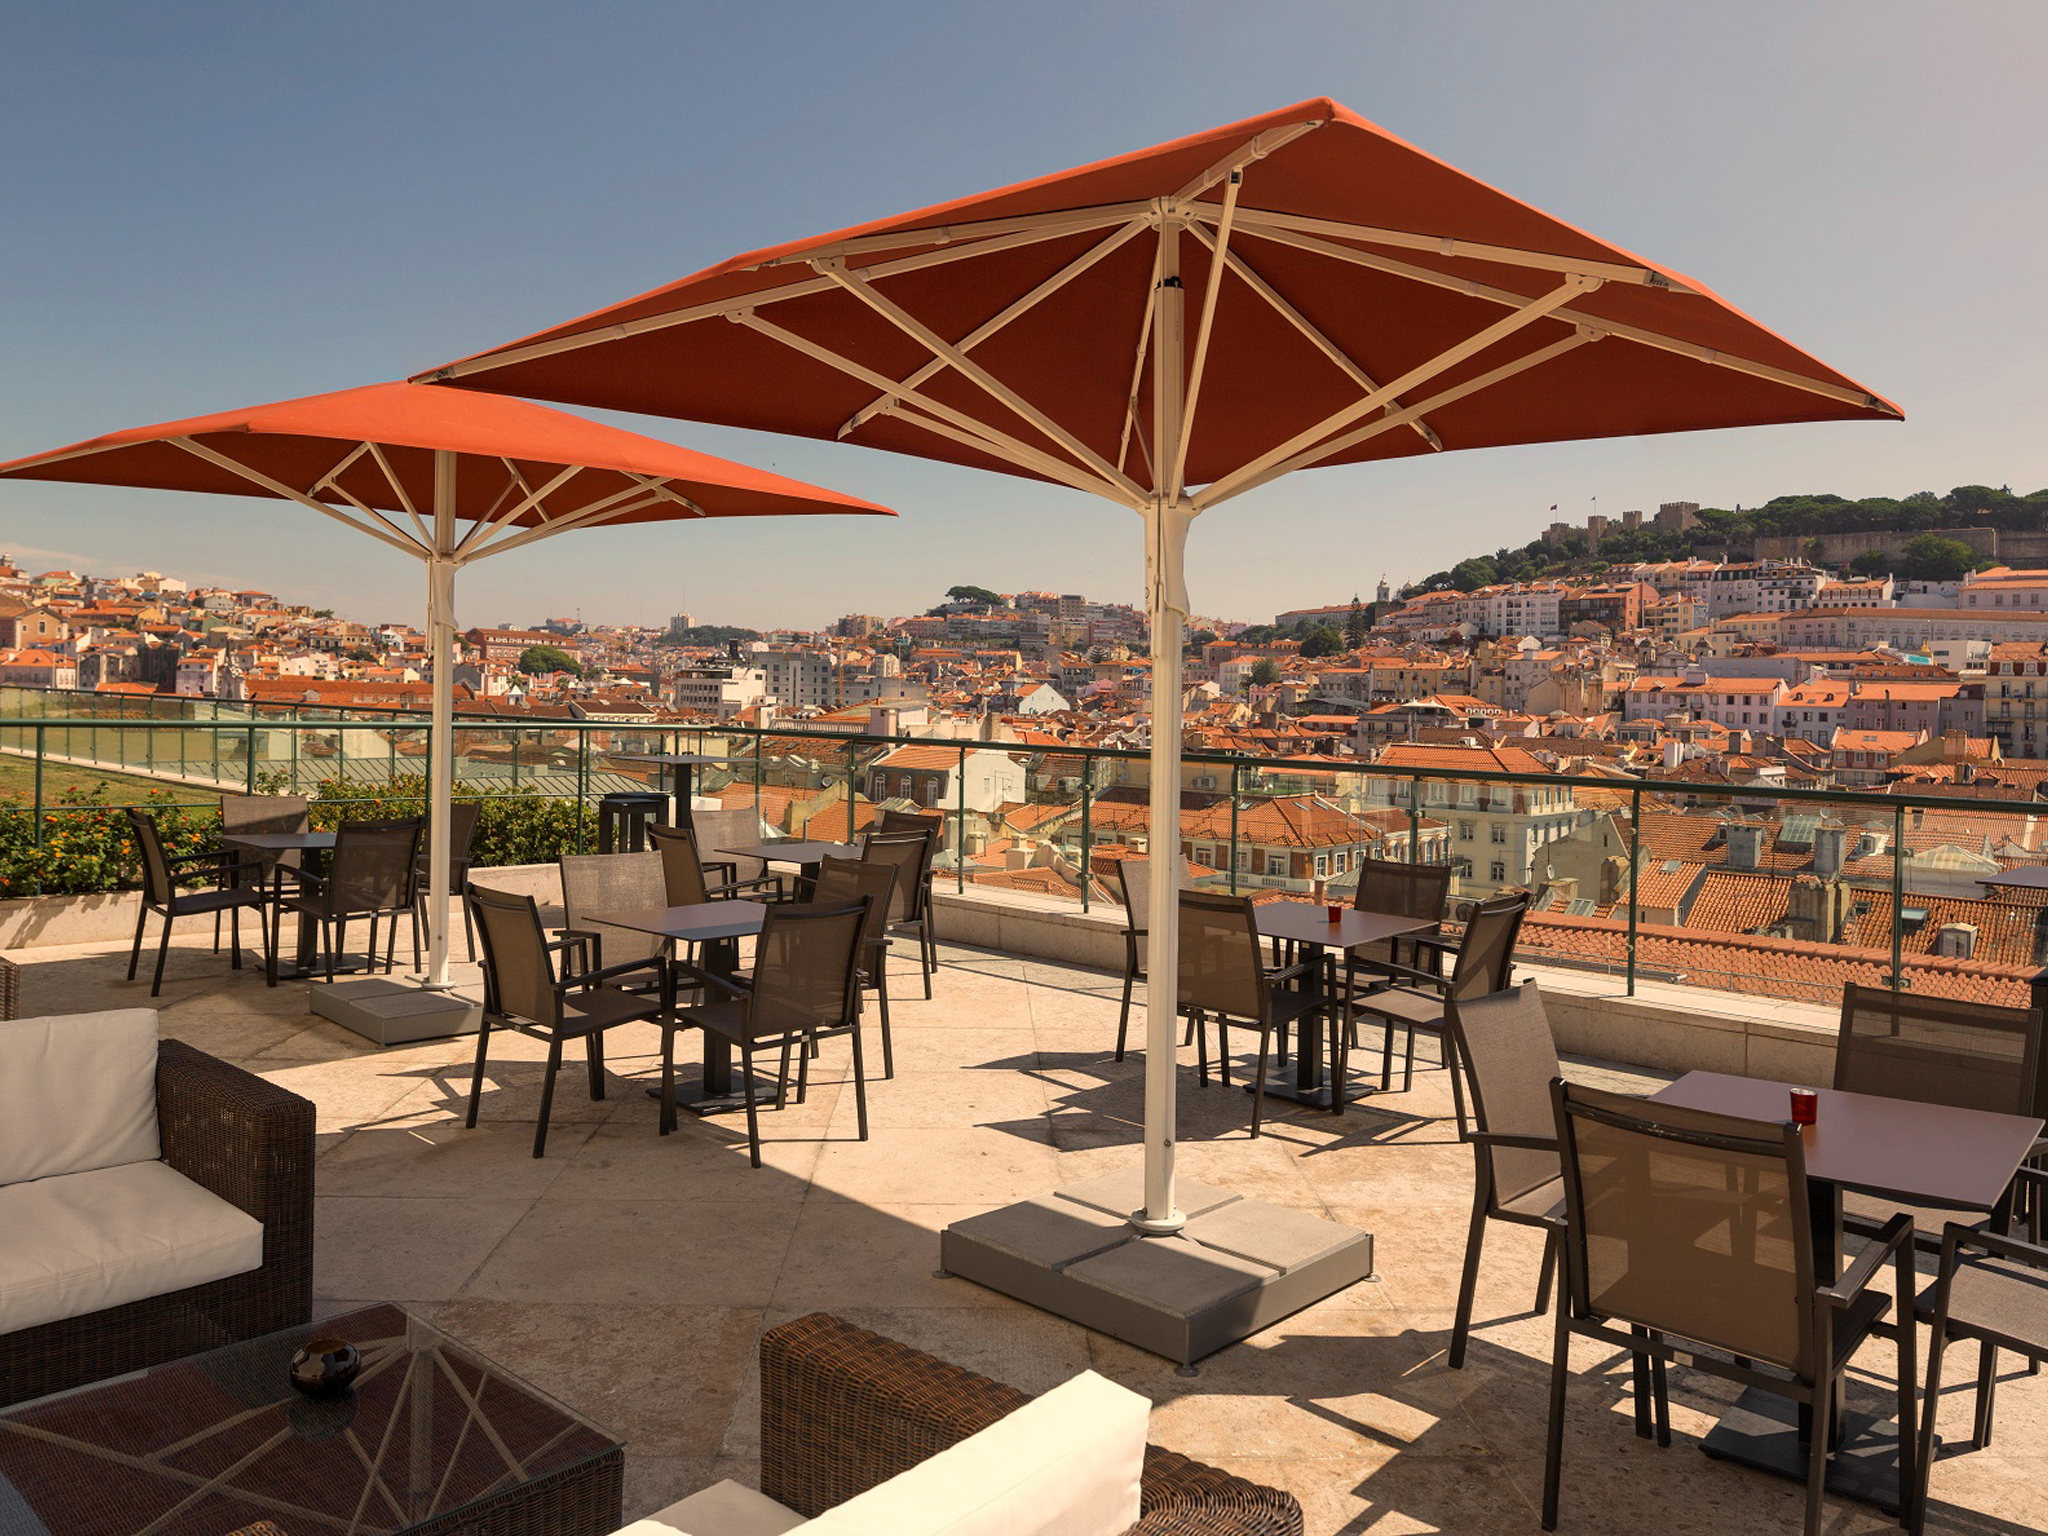 Entretanto Rooftop Bar do Hotel do Chiado